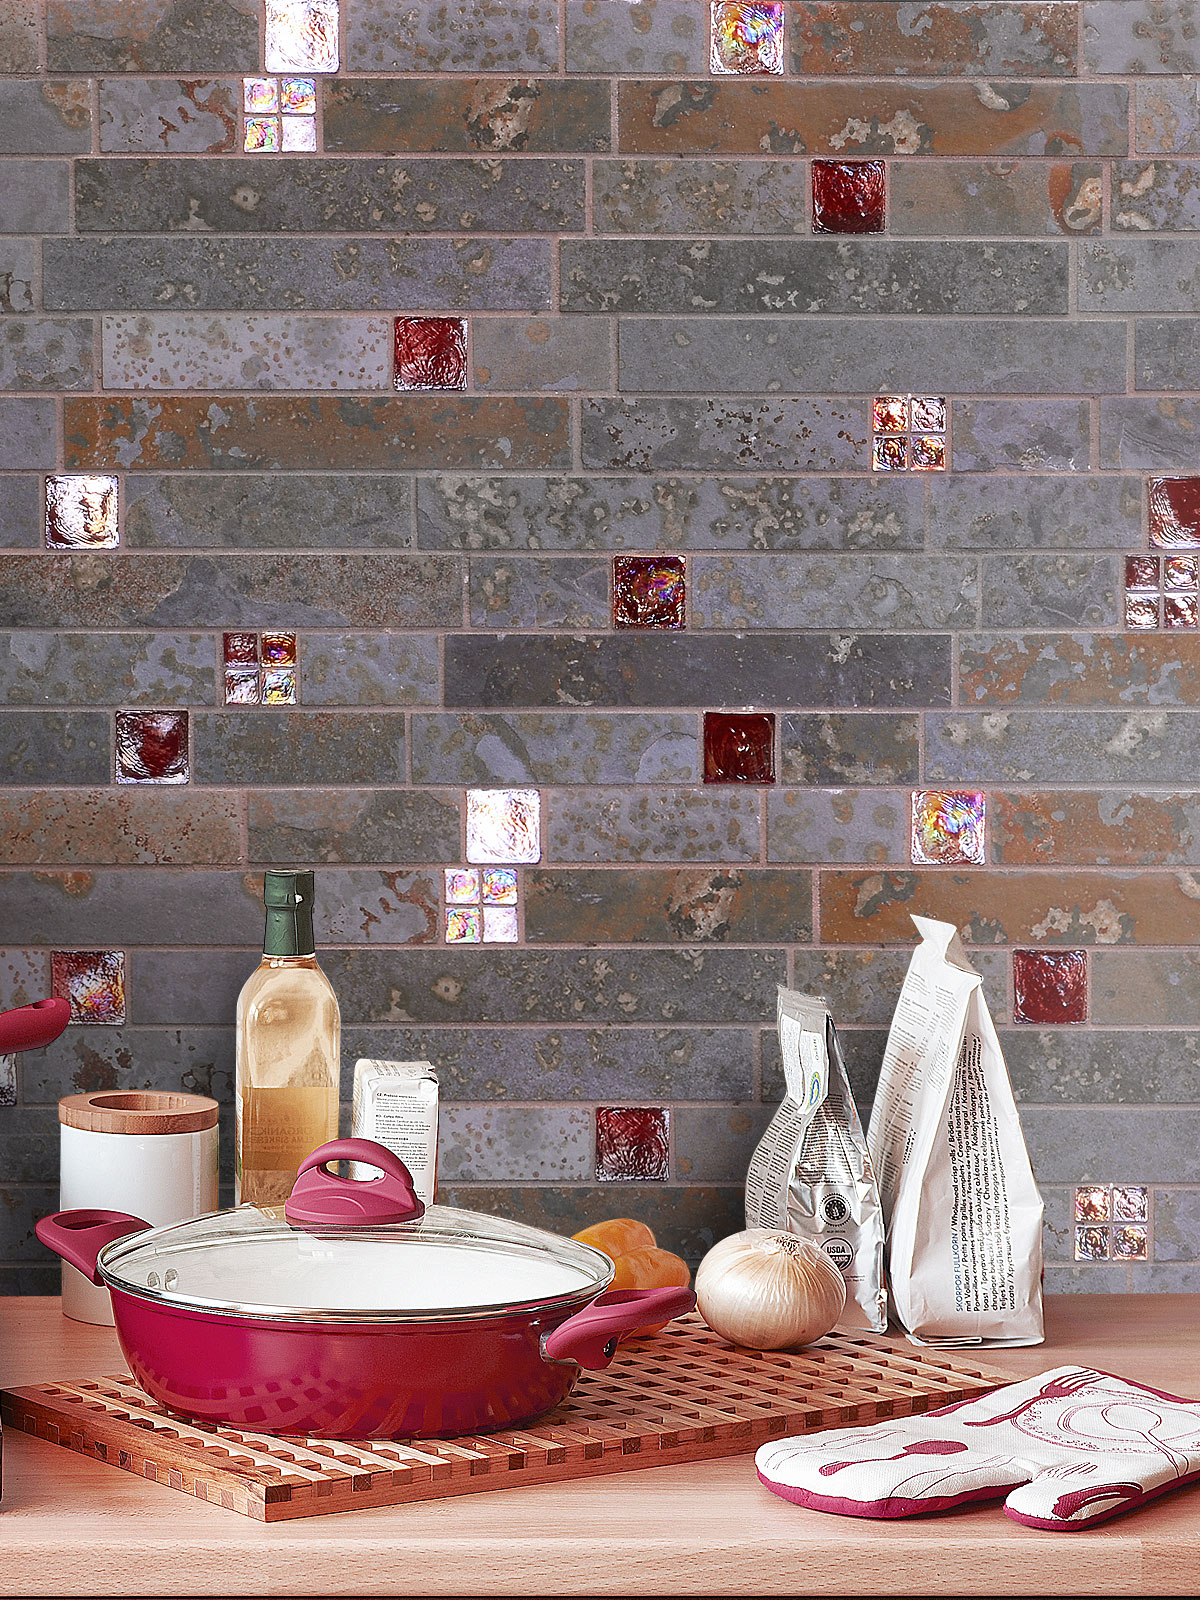 BA1046 Rusty brown color slate tile with red glass backsplash tile from Backsplash.com